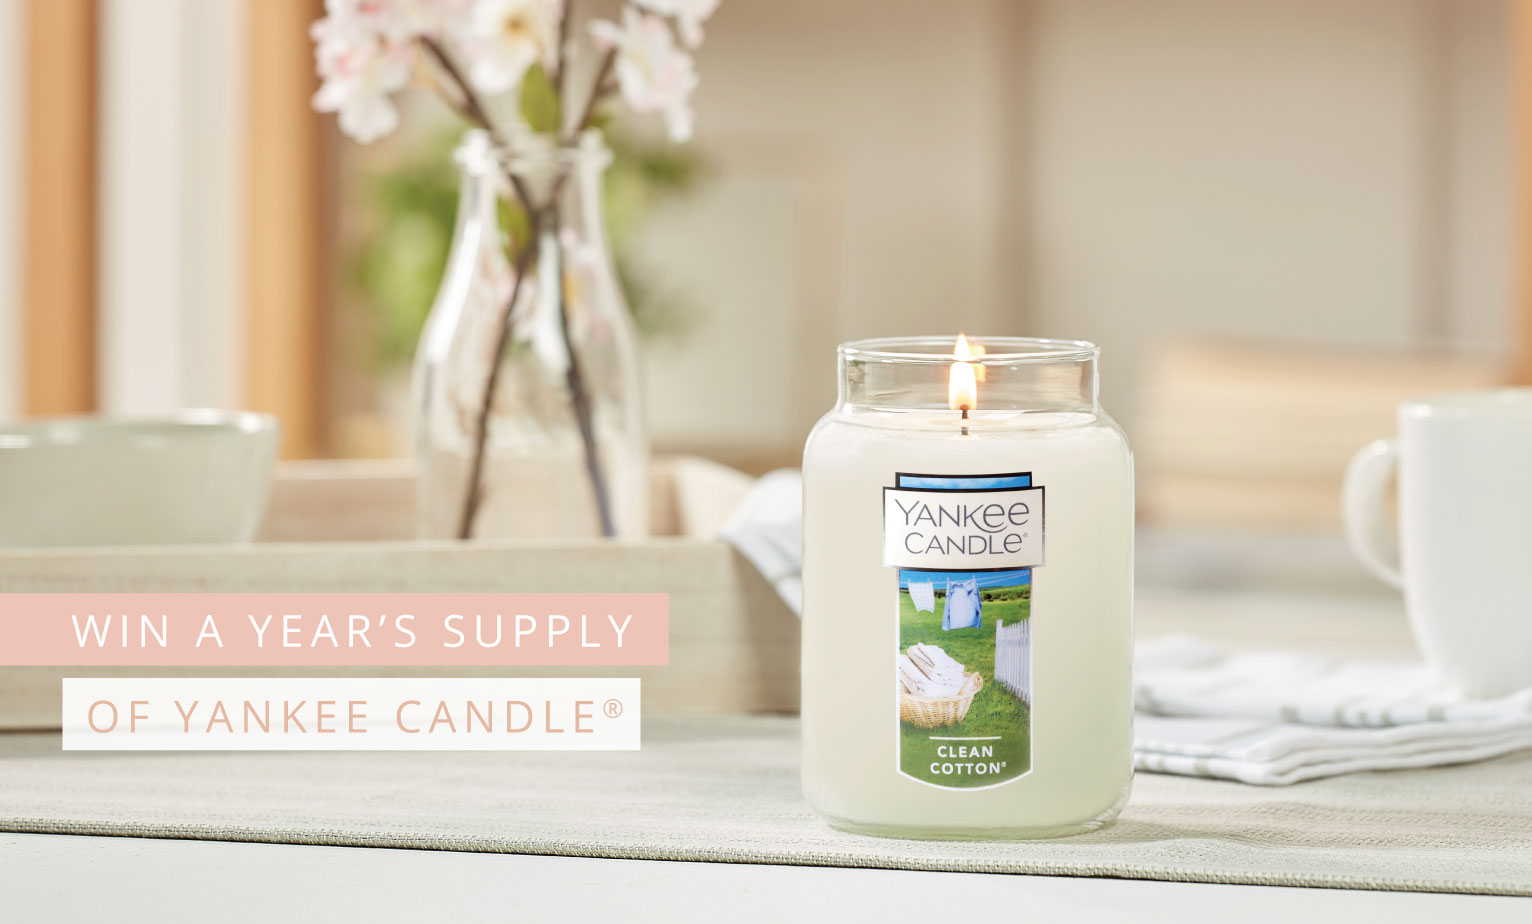 Win a year's worth of Yankee Candle® valued at over $1000*